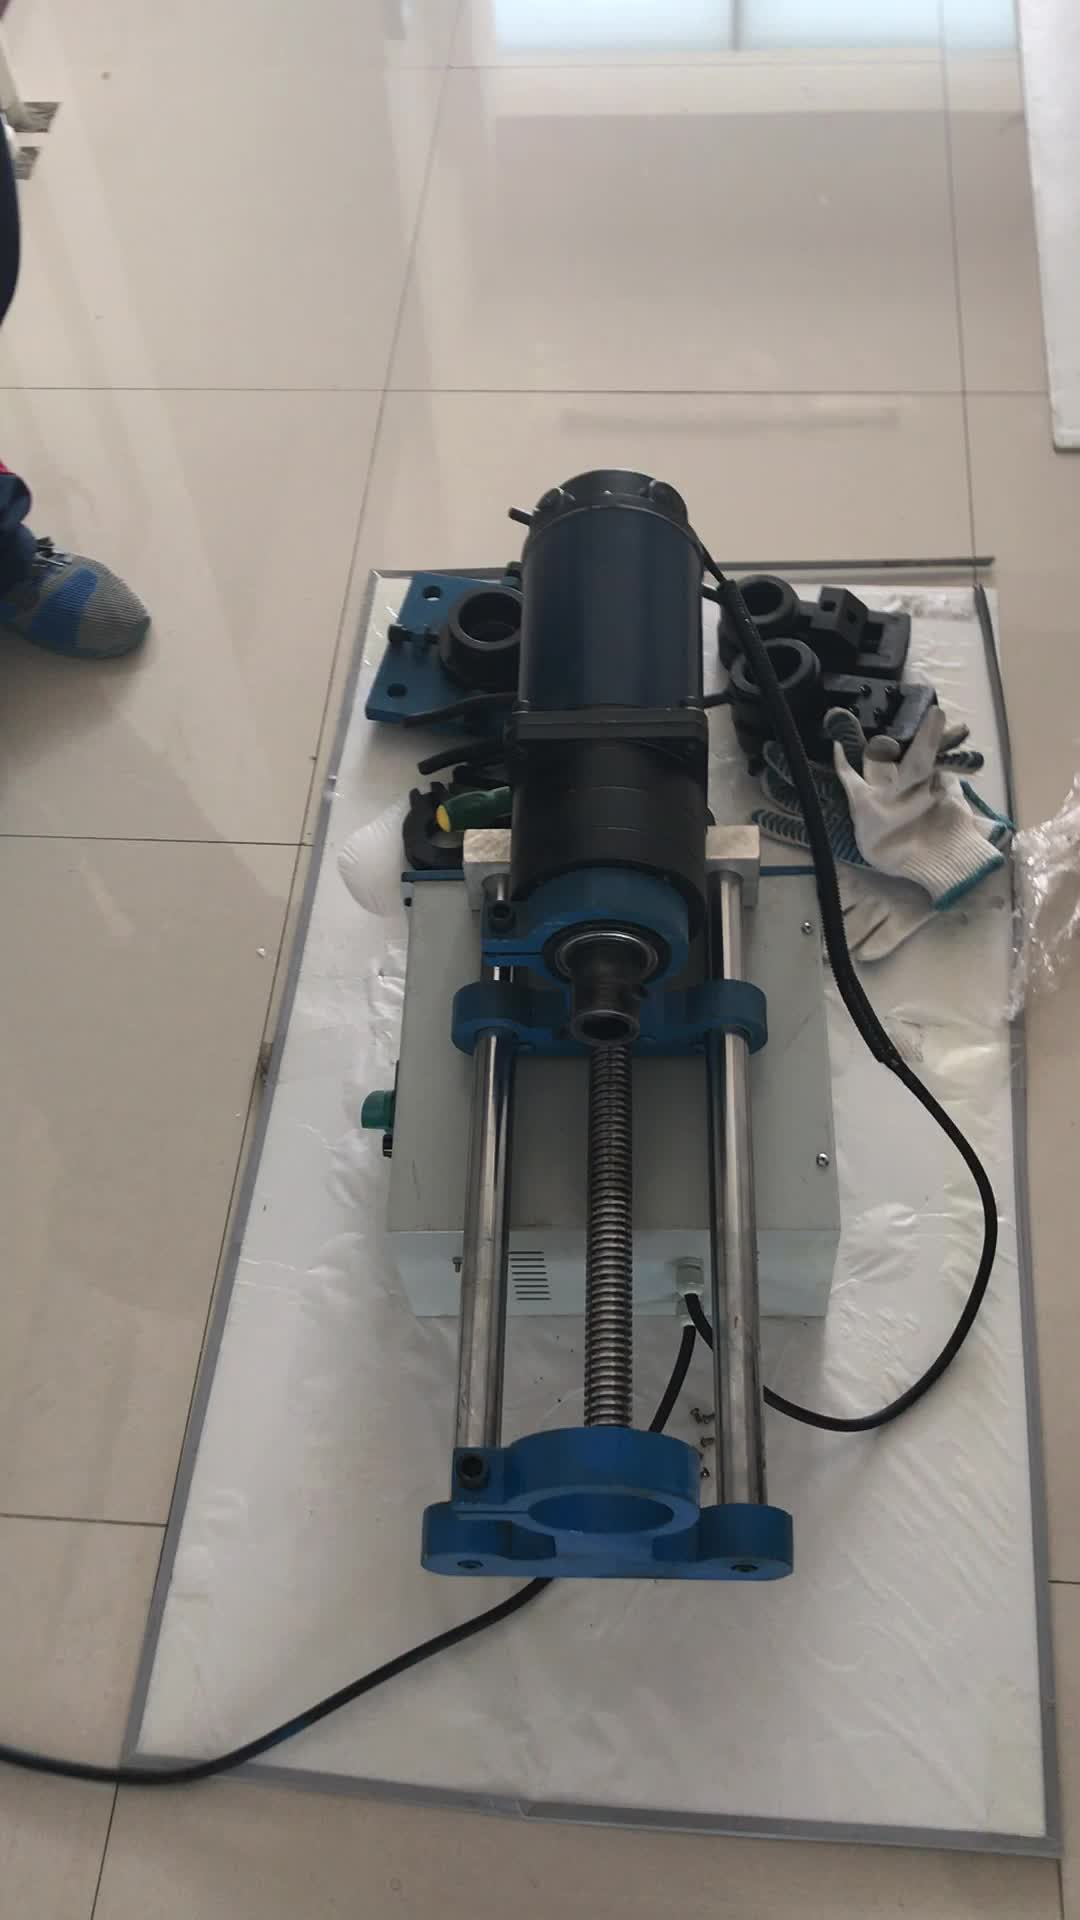 JRT40/50/60 Mobile Line Boring Machine Sell to Europe With Big Discount